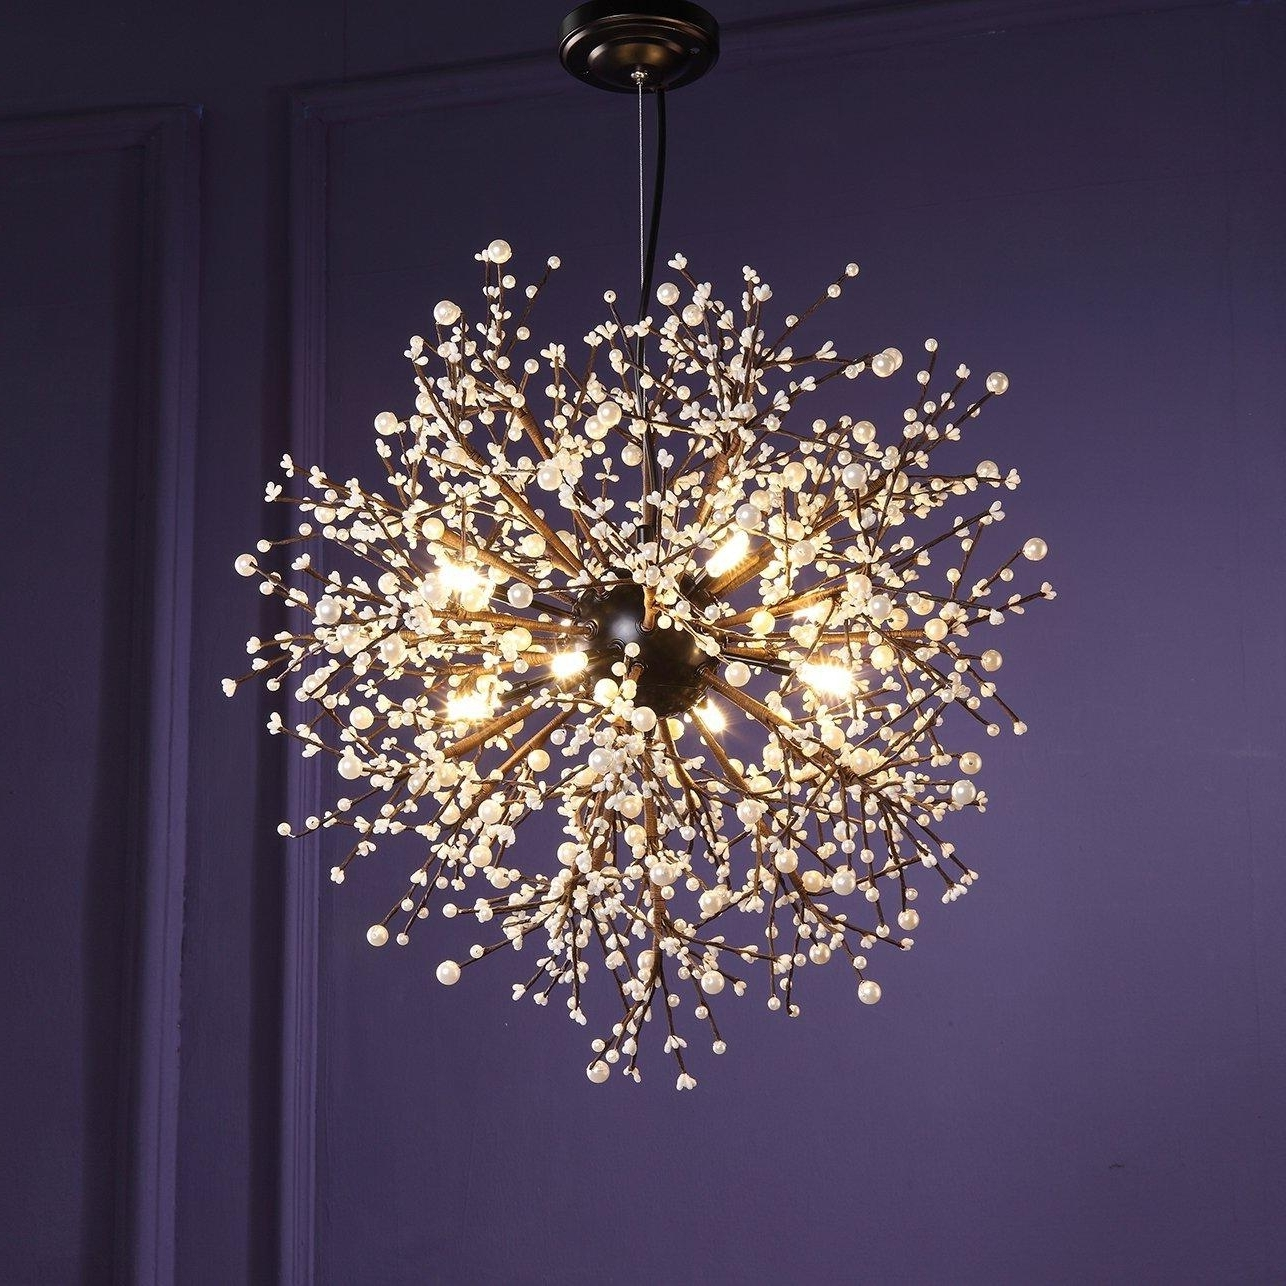 Ultra Modern Chandeliers Throughout Most Current Modern Chandeliers Firework Led Vintage Wrought Iron Chandelier (View 13 of 15)